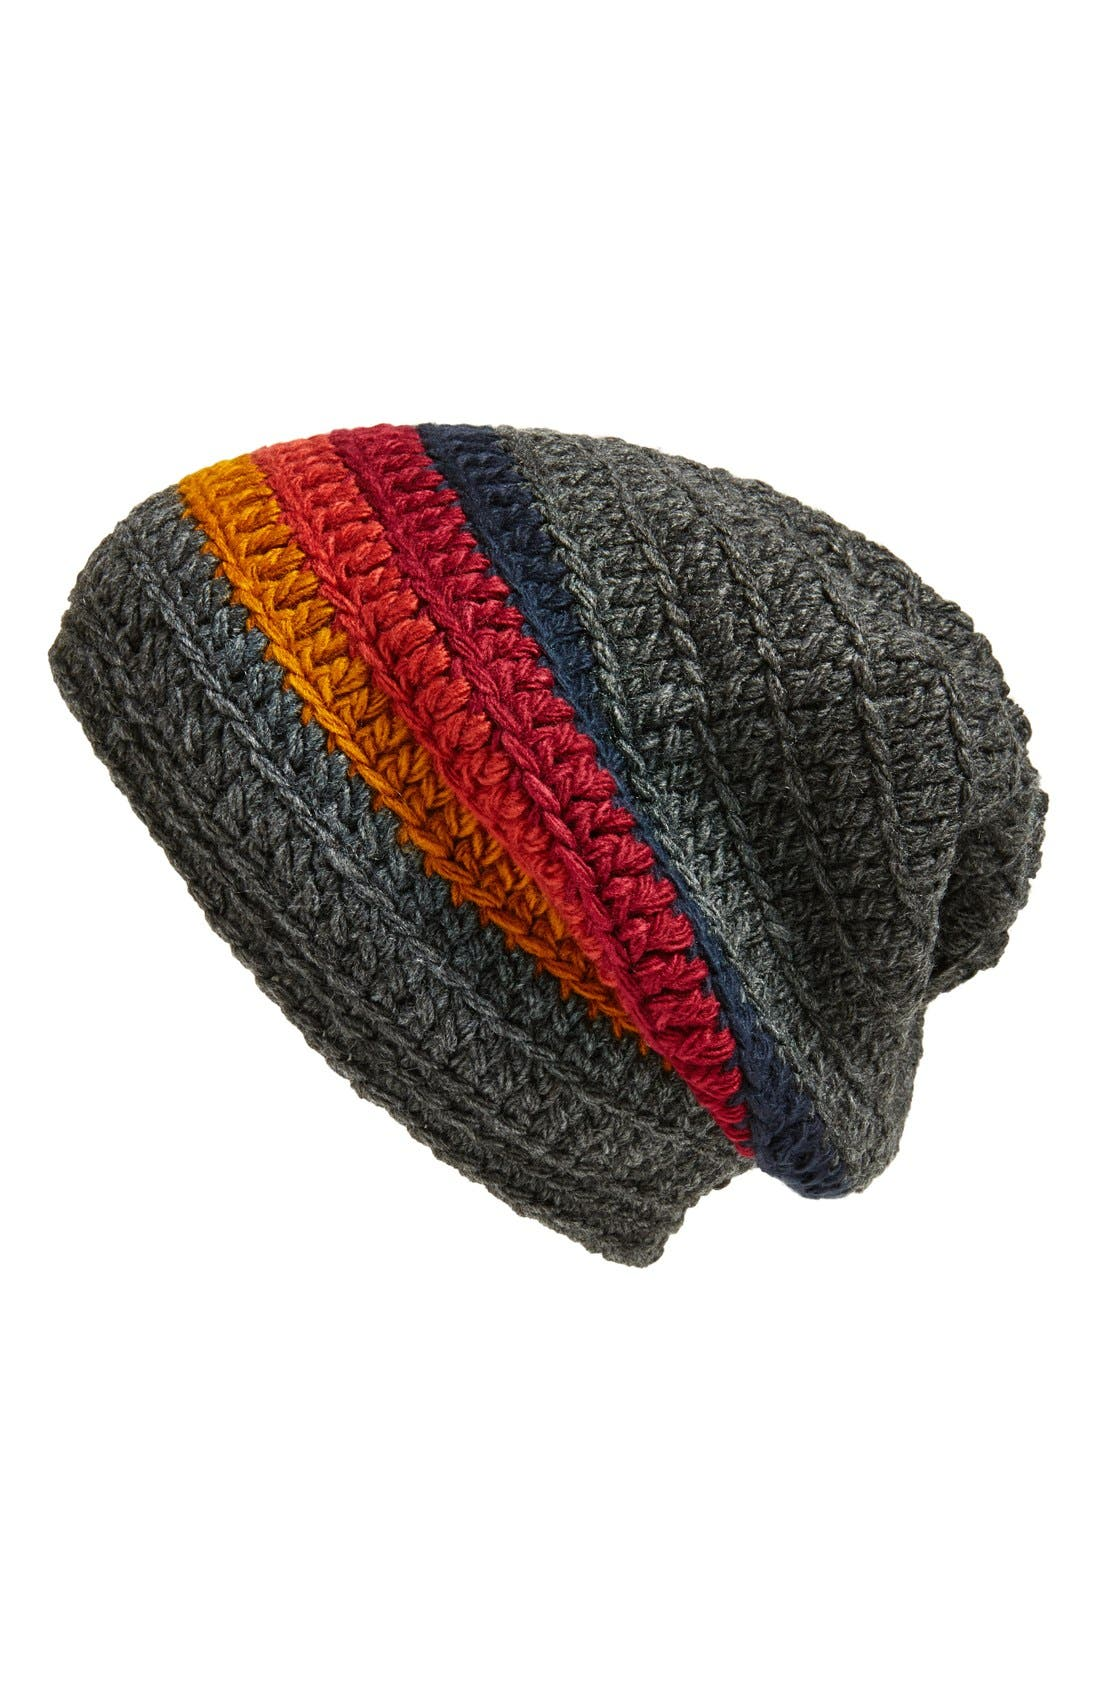 Main Image - King & Fifth Supply Co. 'The Beeskie' Beanie